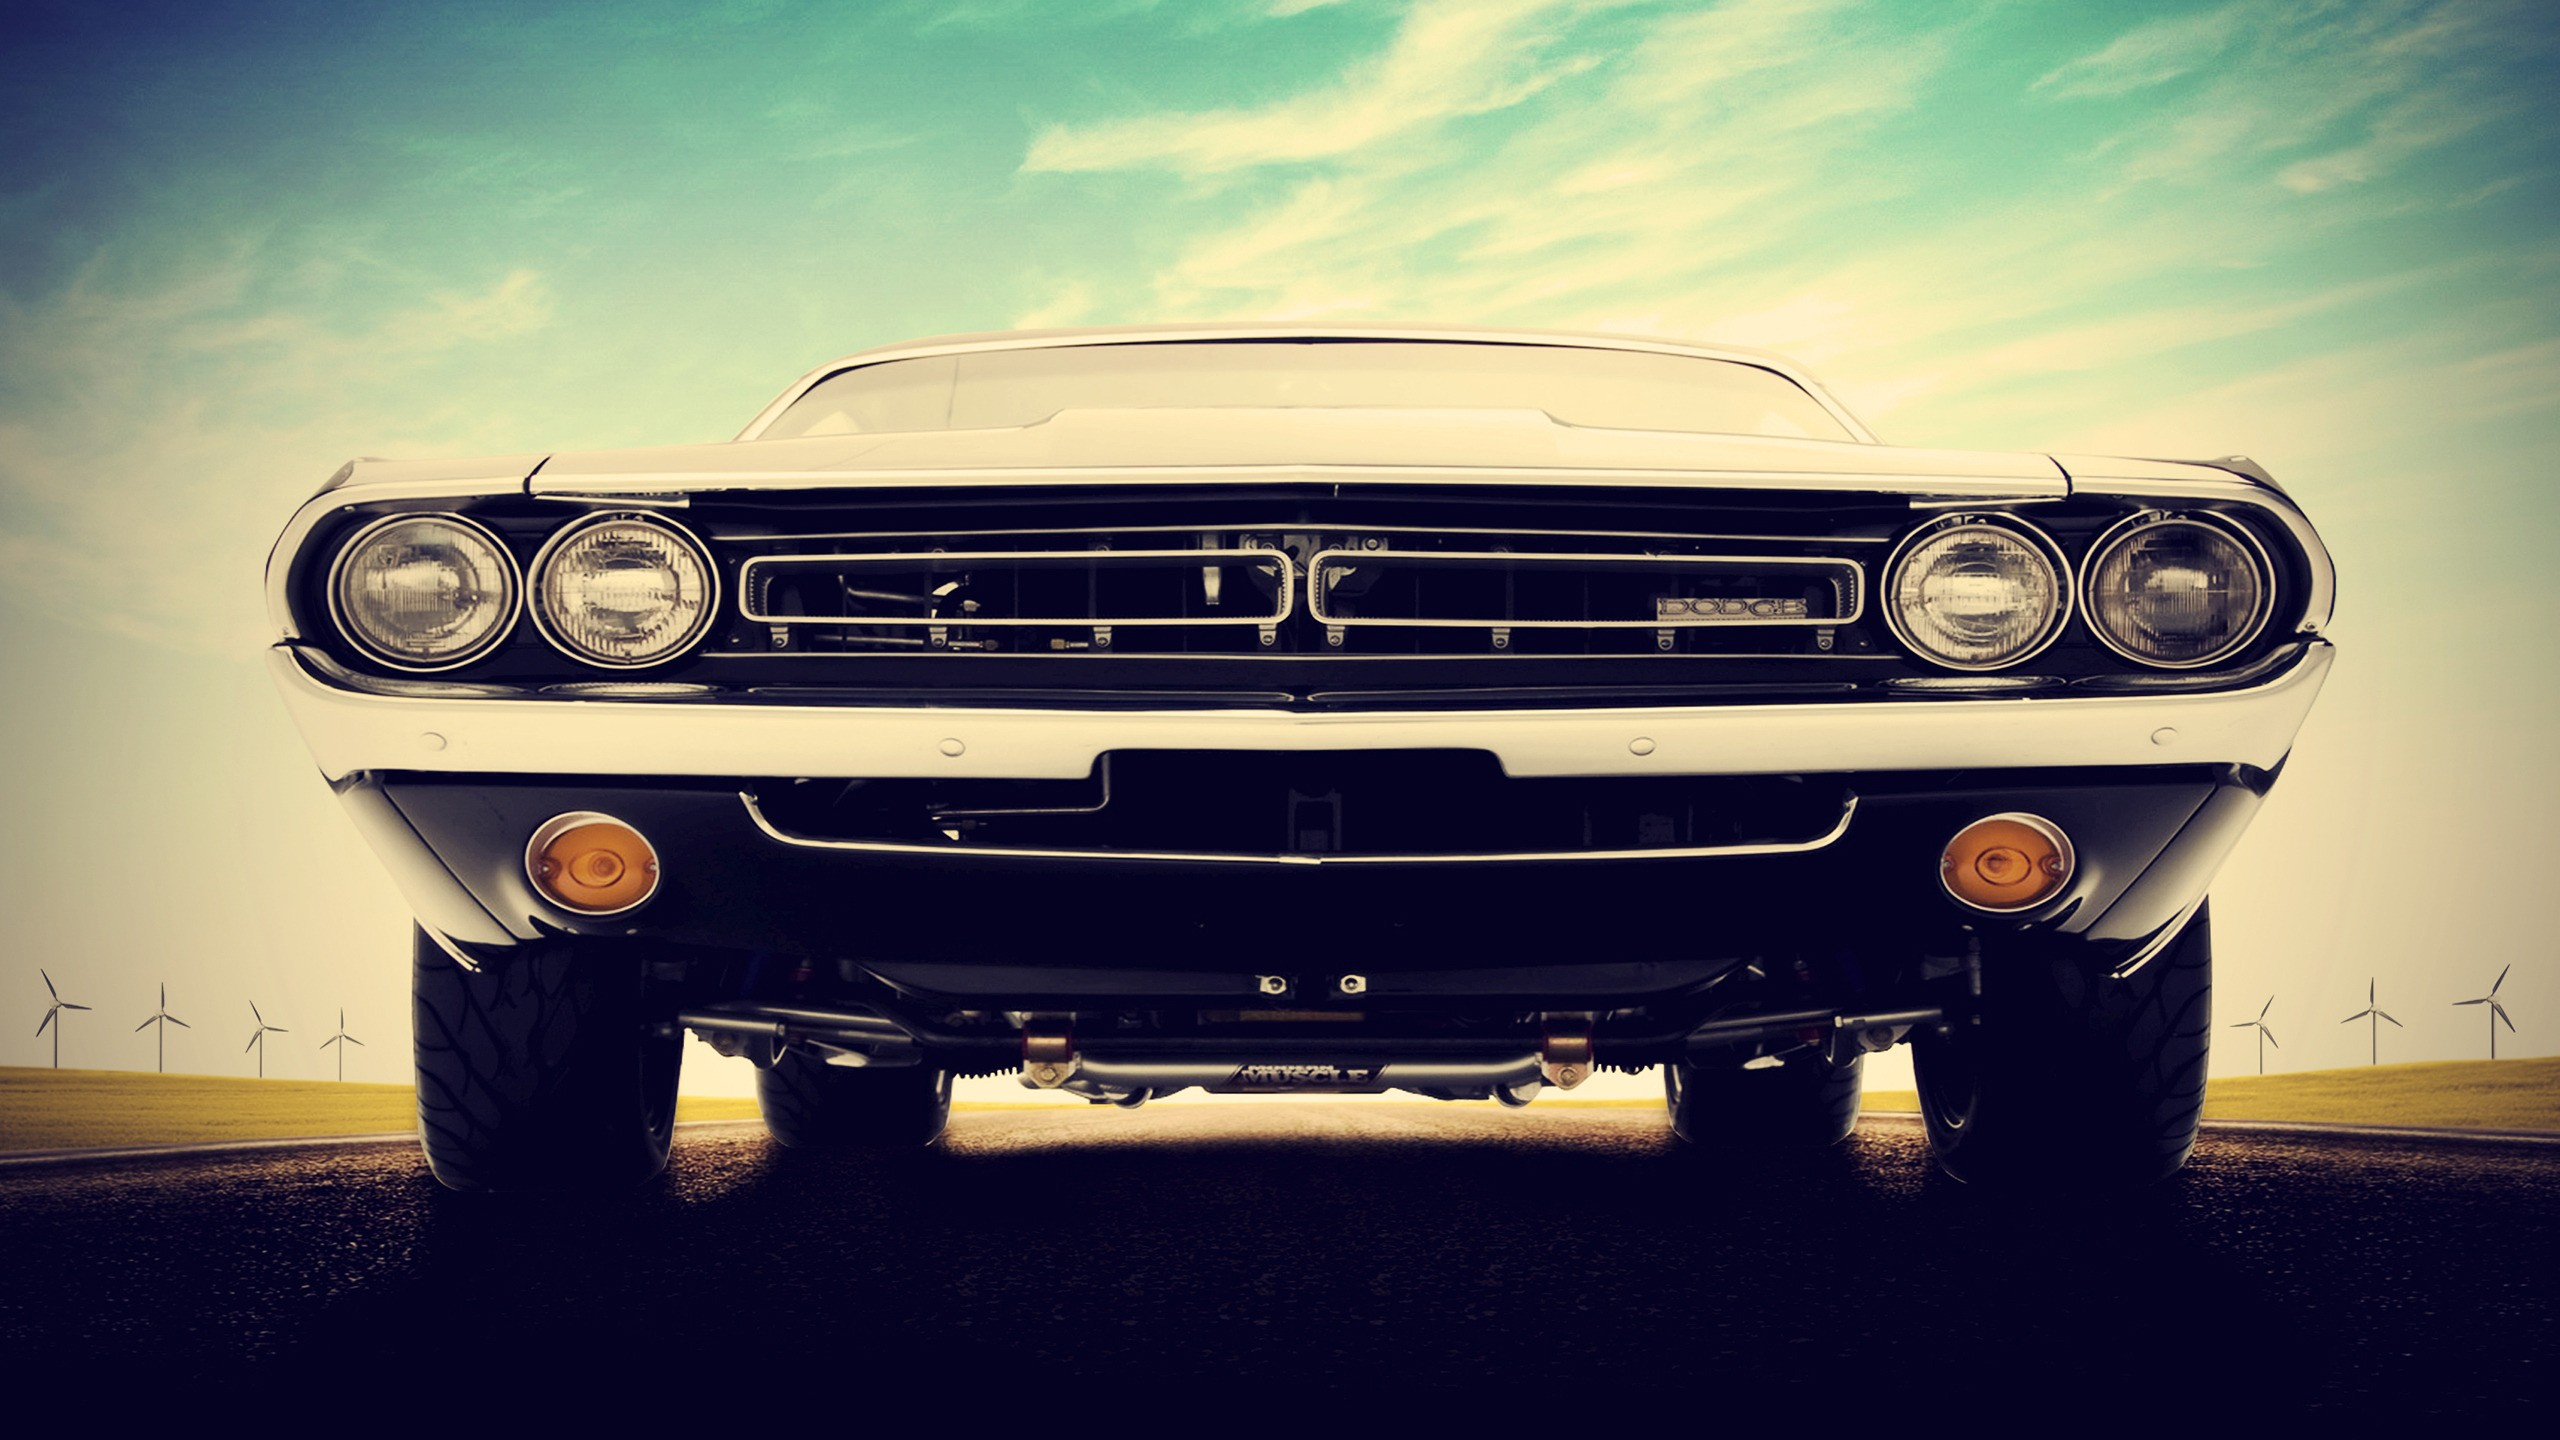 Download Muscle Car Wallpaper 2560x1440 73 Muscle Cars